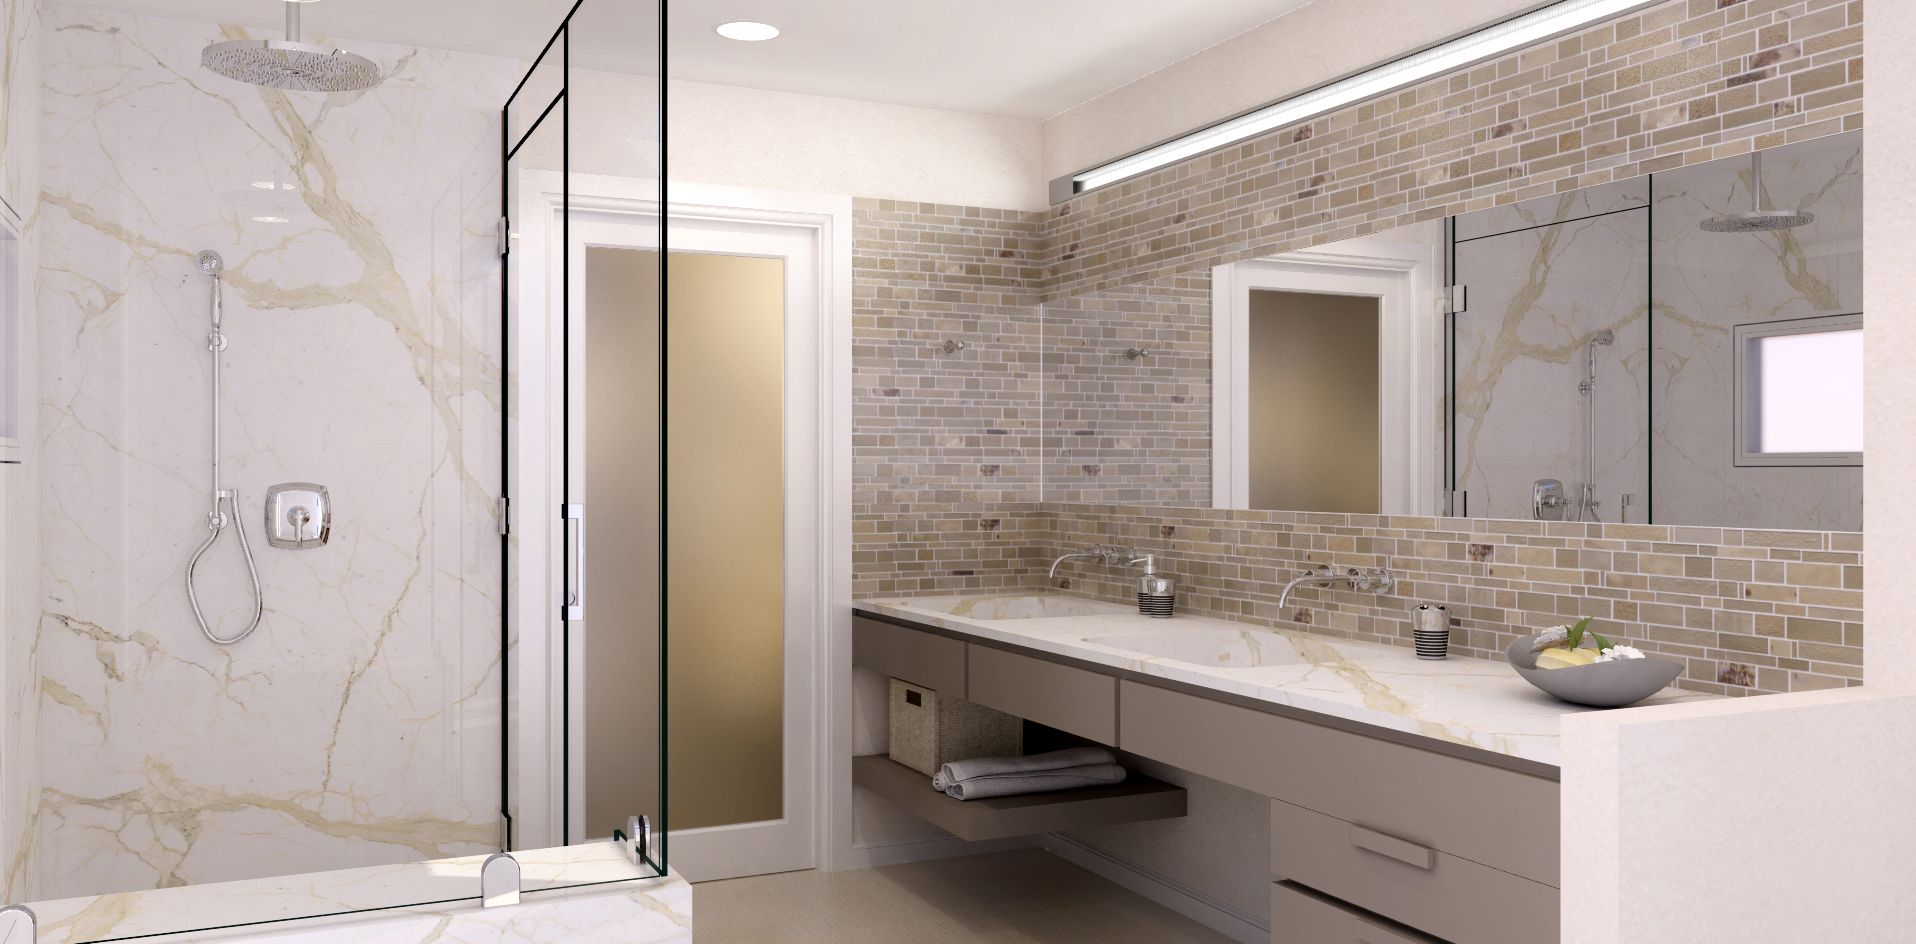 Need Bathroom Ideas? Pair Neutral Colors With A Bathroom Vanity Or Tile  Countertops And New Faucets To Achieve Many Different Looks In Your Bathroom .